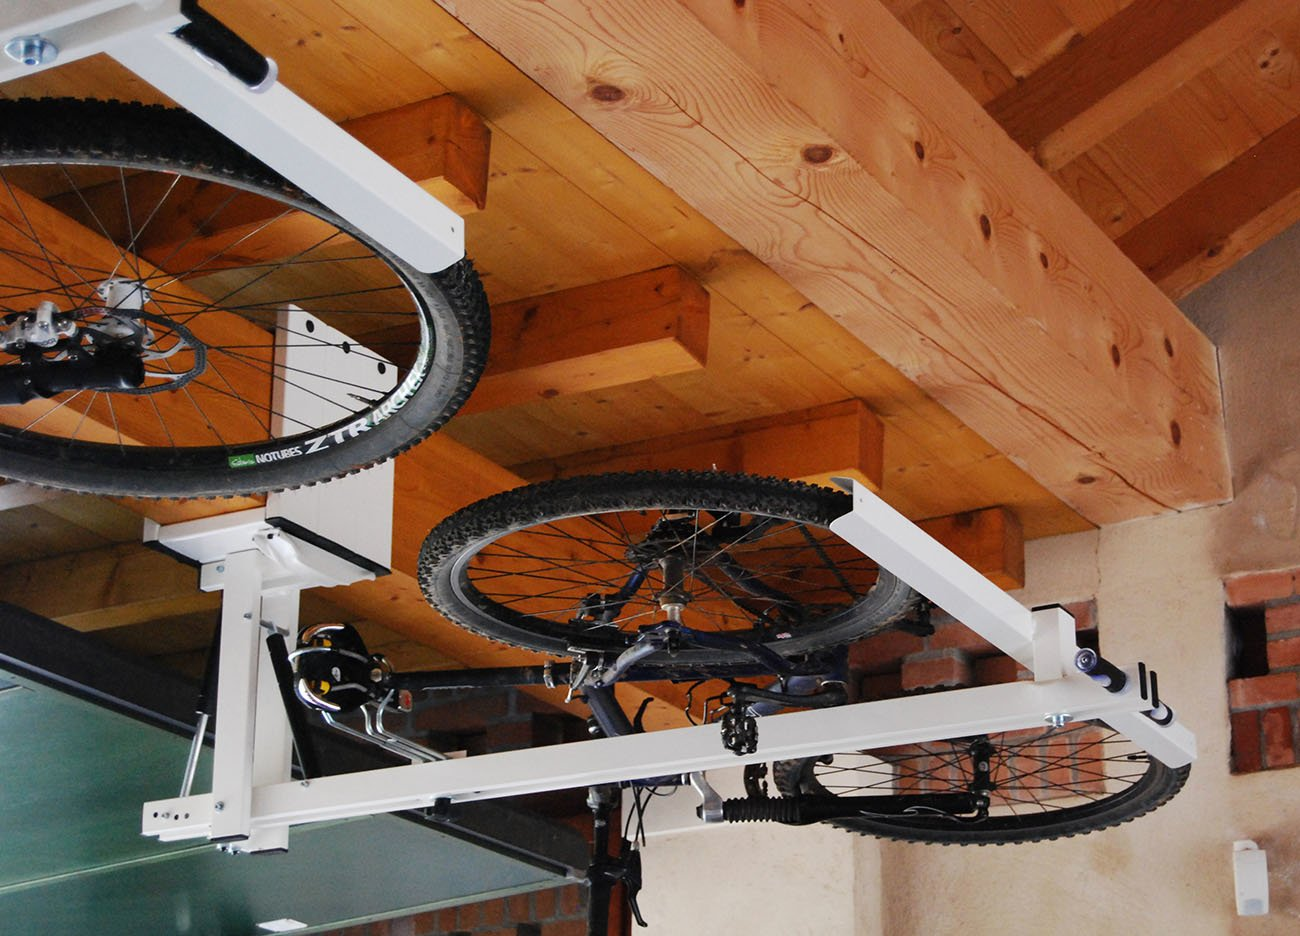 ceiling overhead bike rack for mountain bike trekking bike touring bike flat bike lift. Black Bedroom Furniture Sets. Home Design Ideas